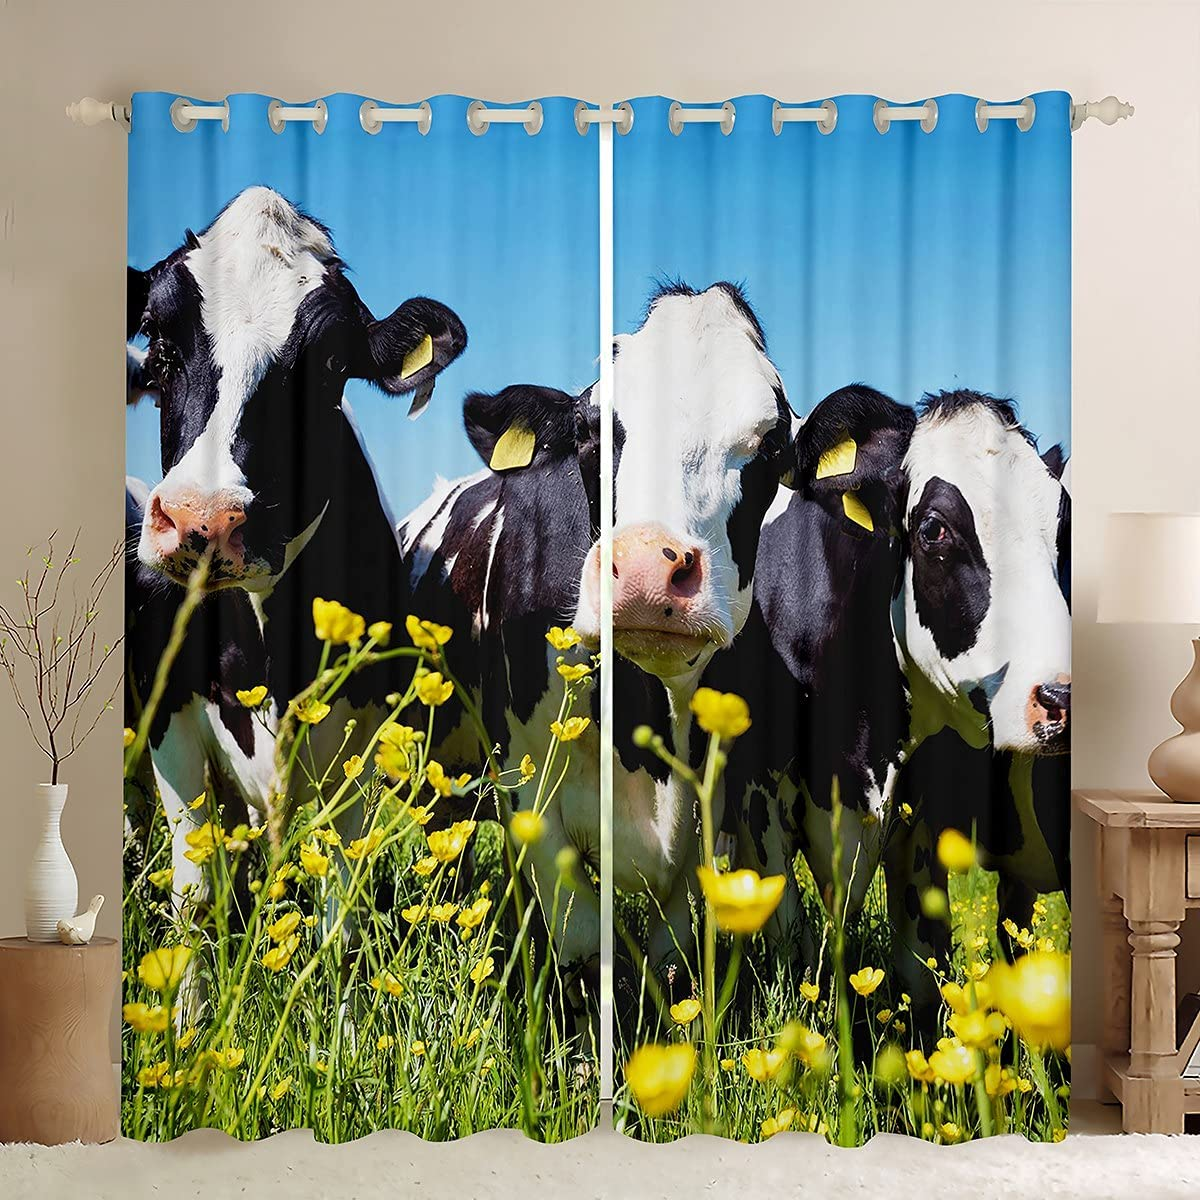 3D Cow Print unisex Window Curtain Cute Natural F Plant Cattle Curtains Great interest